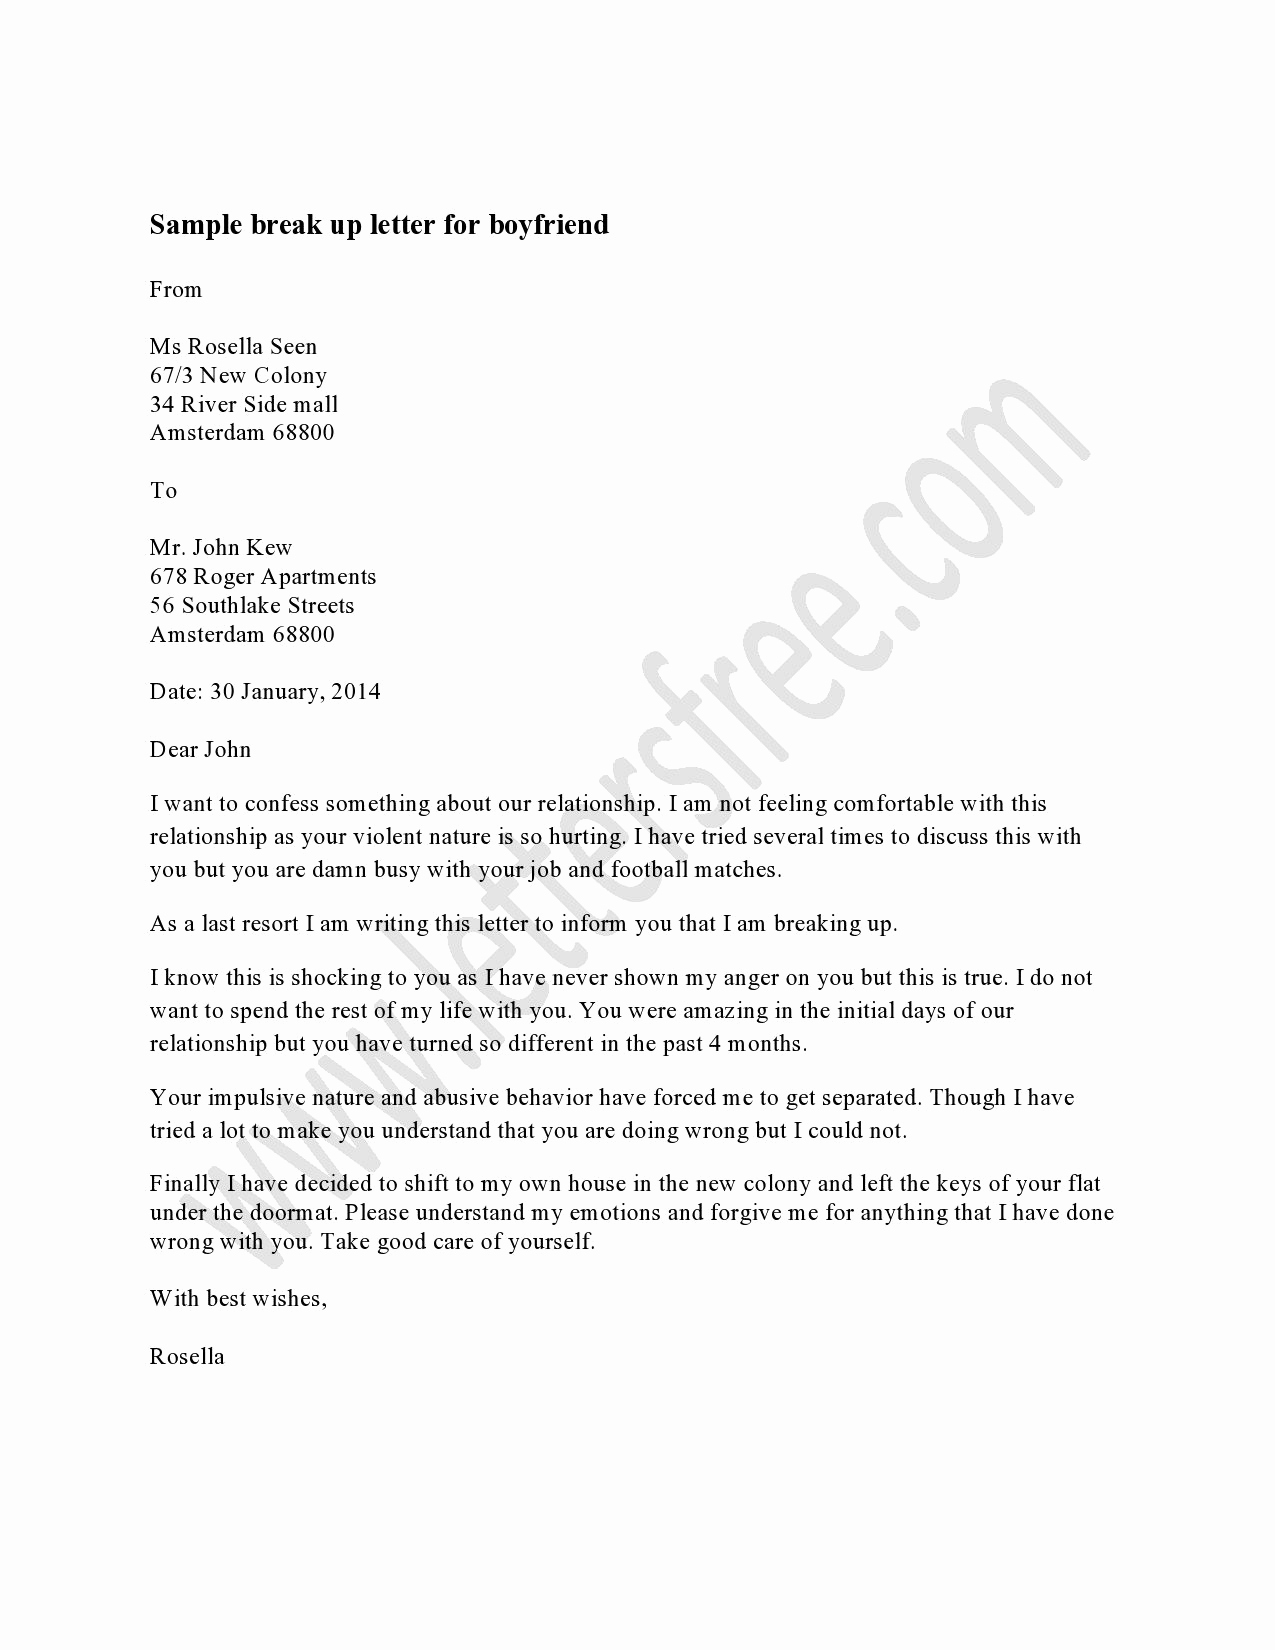 Break Up Letter to Boyfriend Luxury Break Up Letter Sample